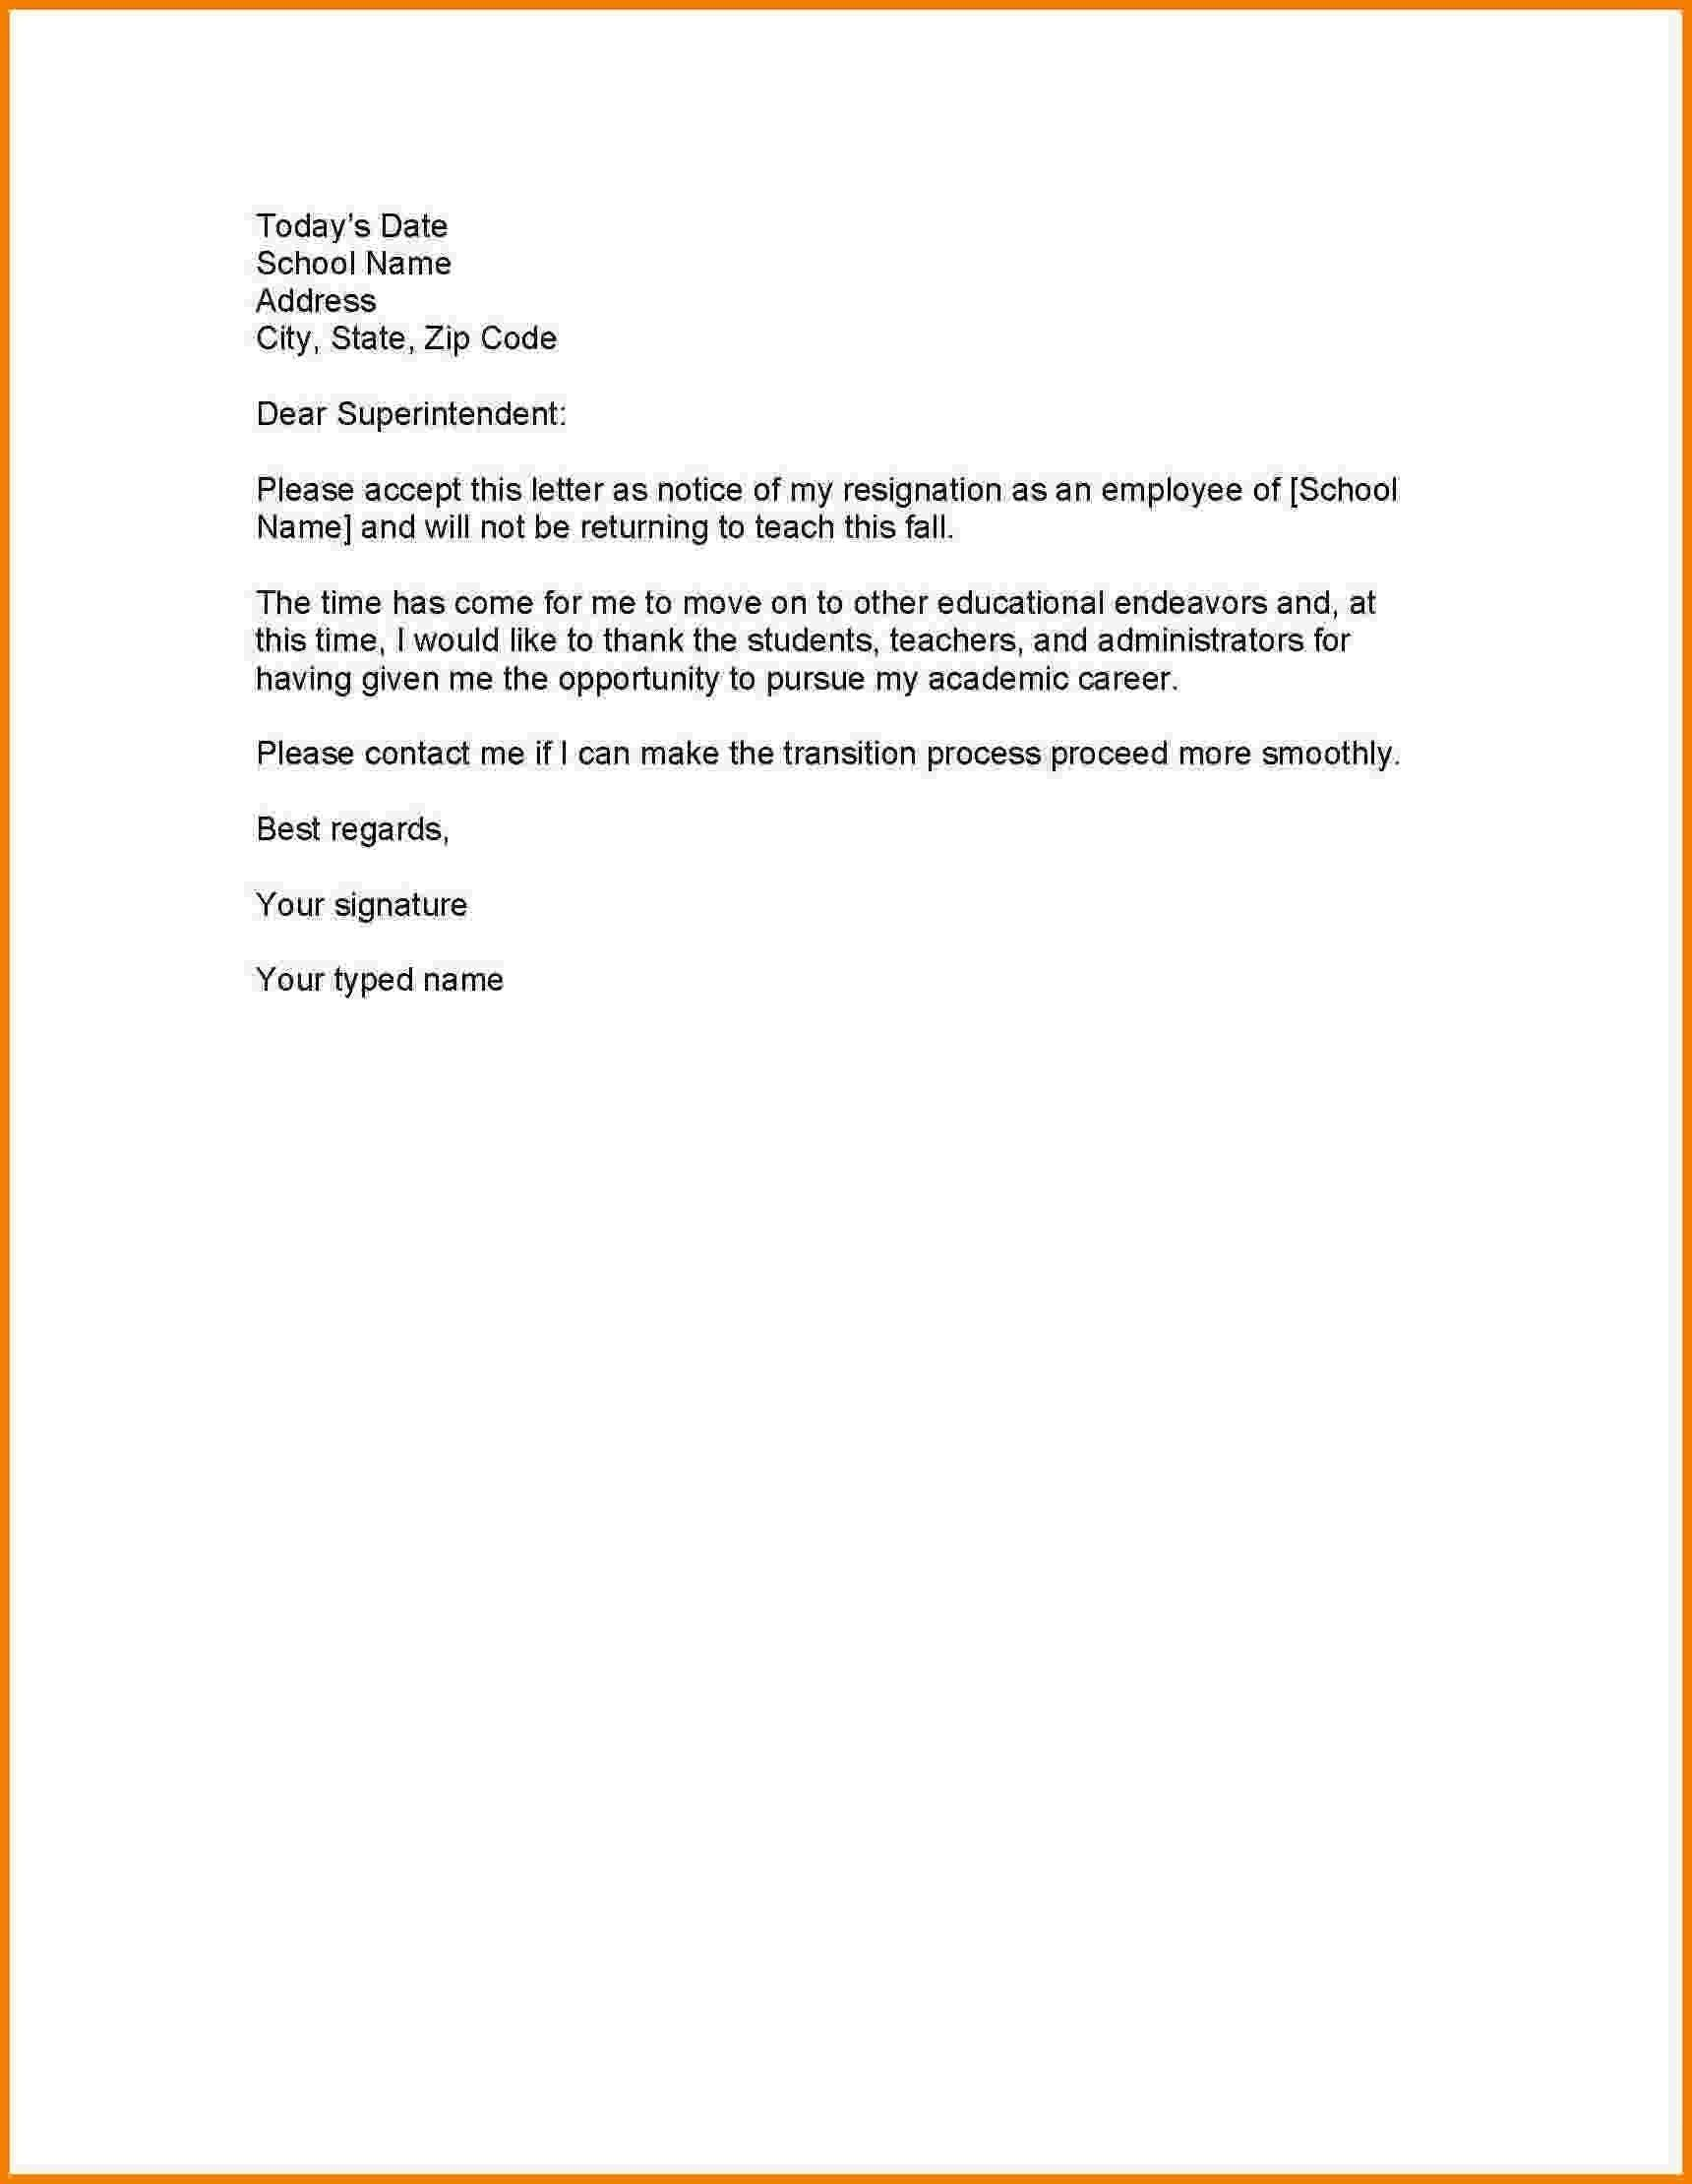 Format Letter Of Resignation As Employee New Resignation Letter